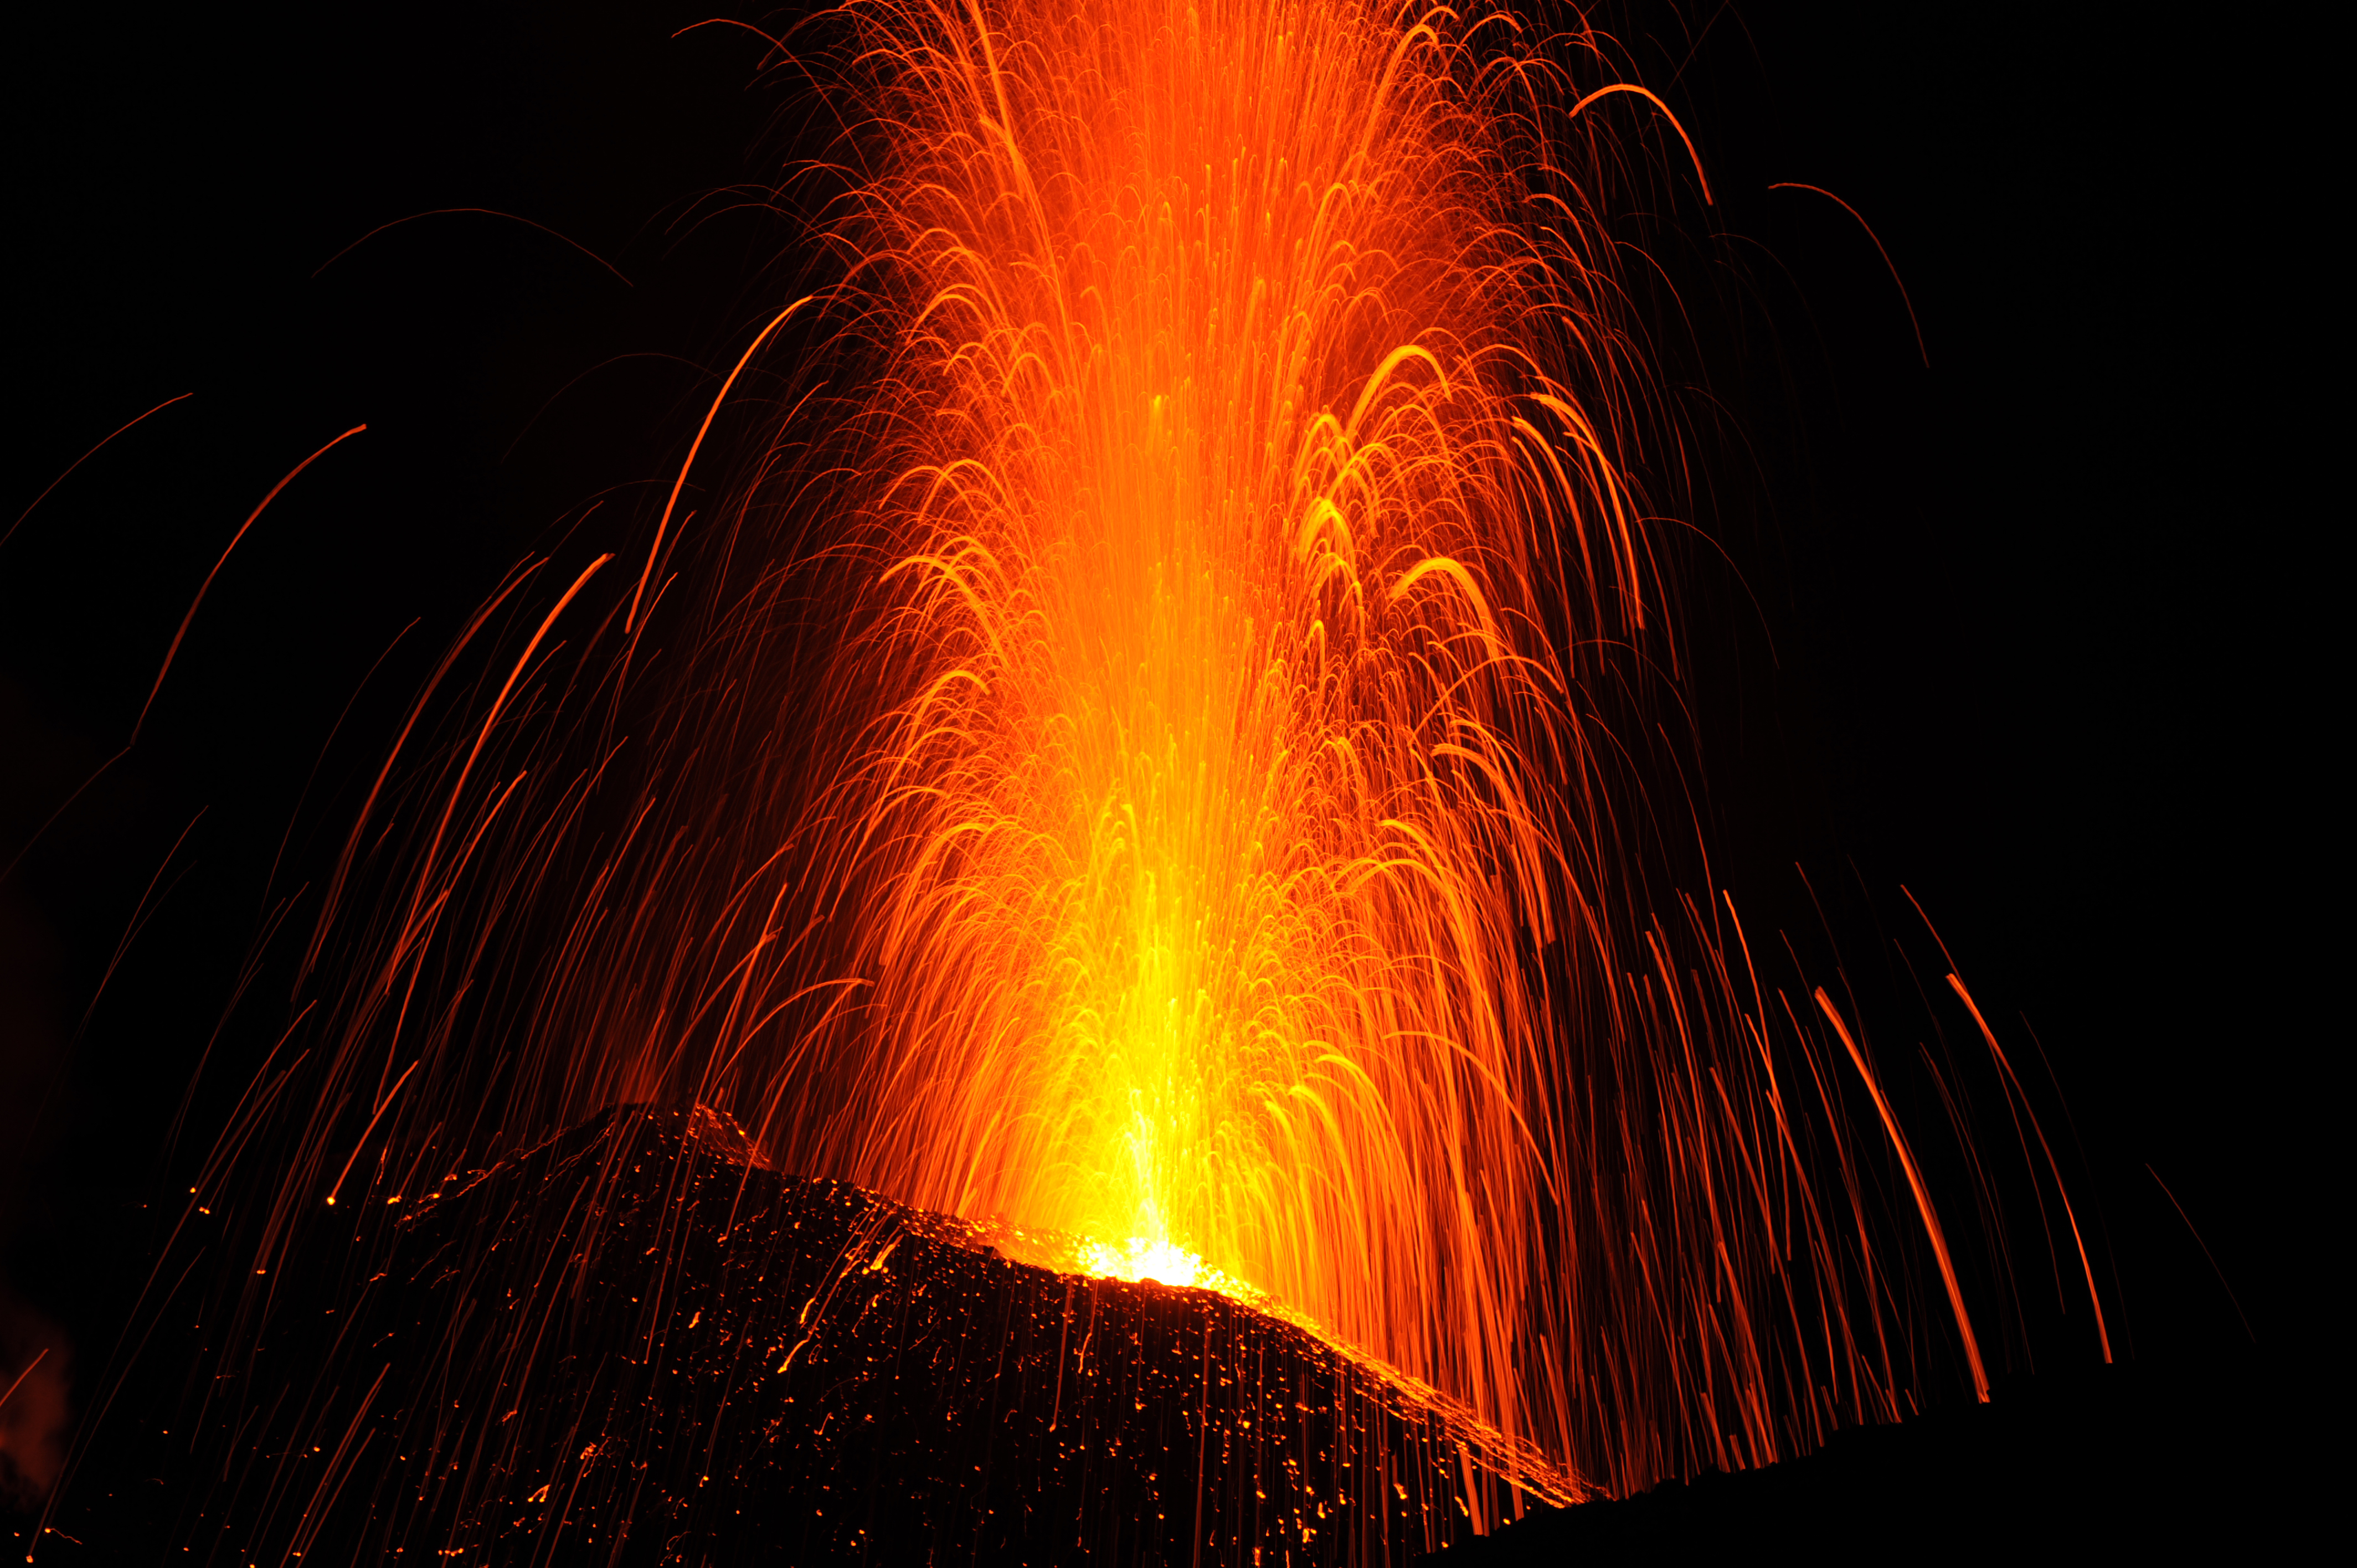 Descriptions of the eruption of one of the volcanoes of the 21 century